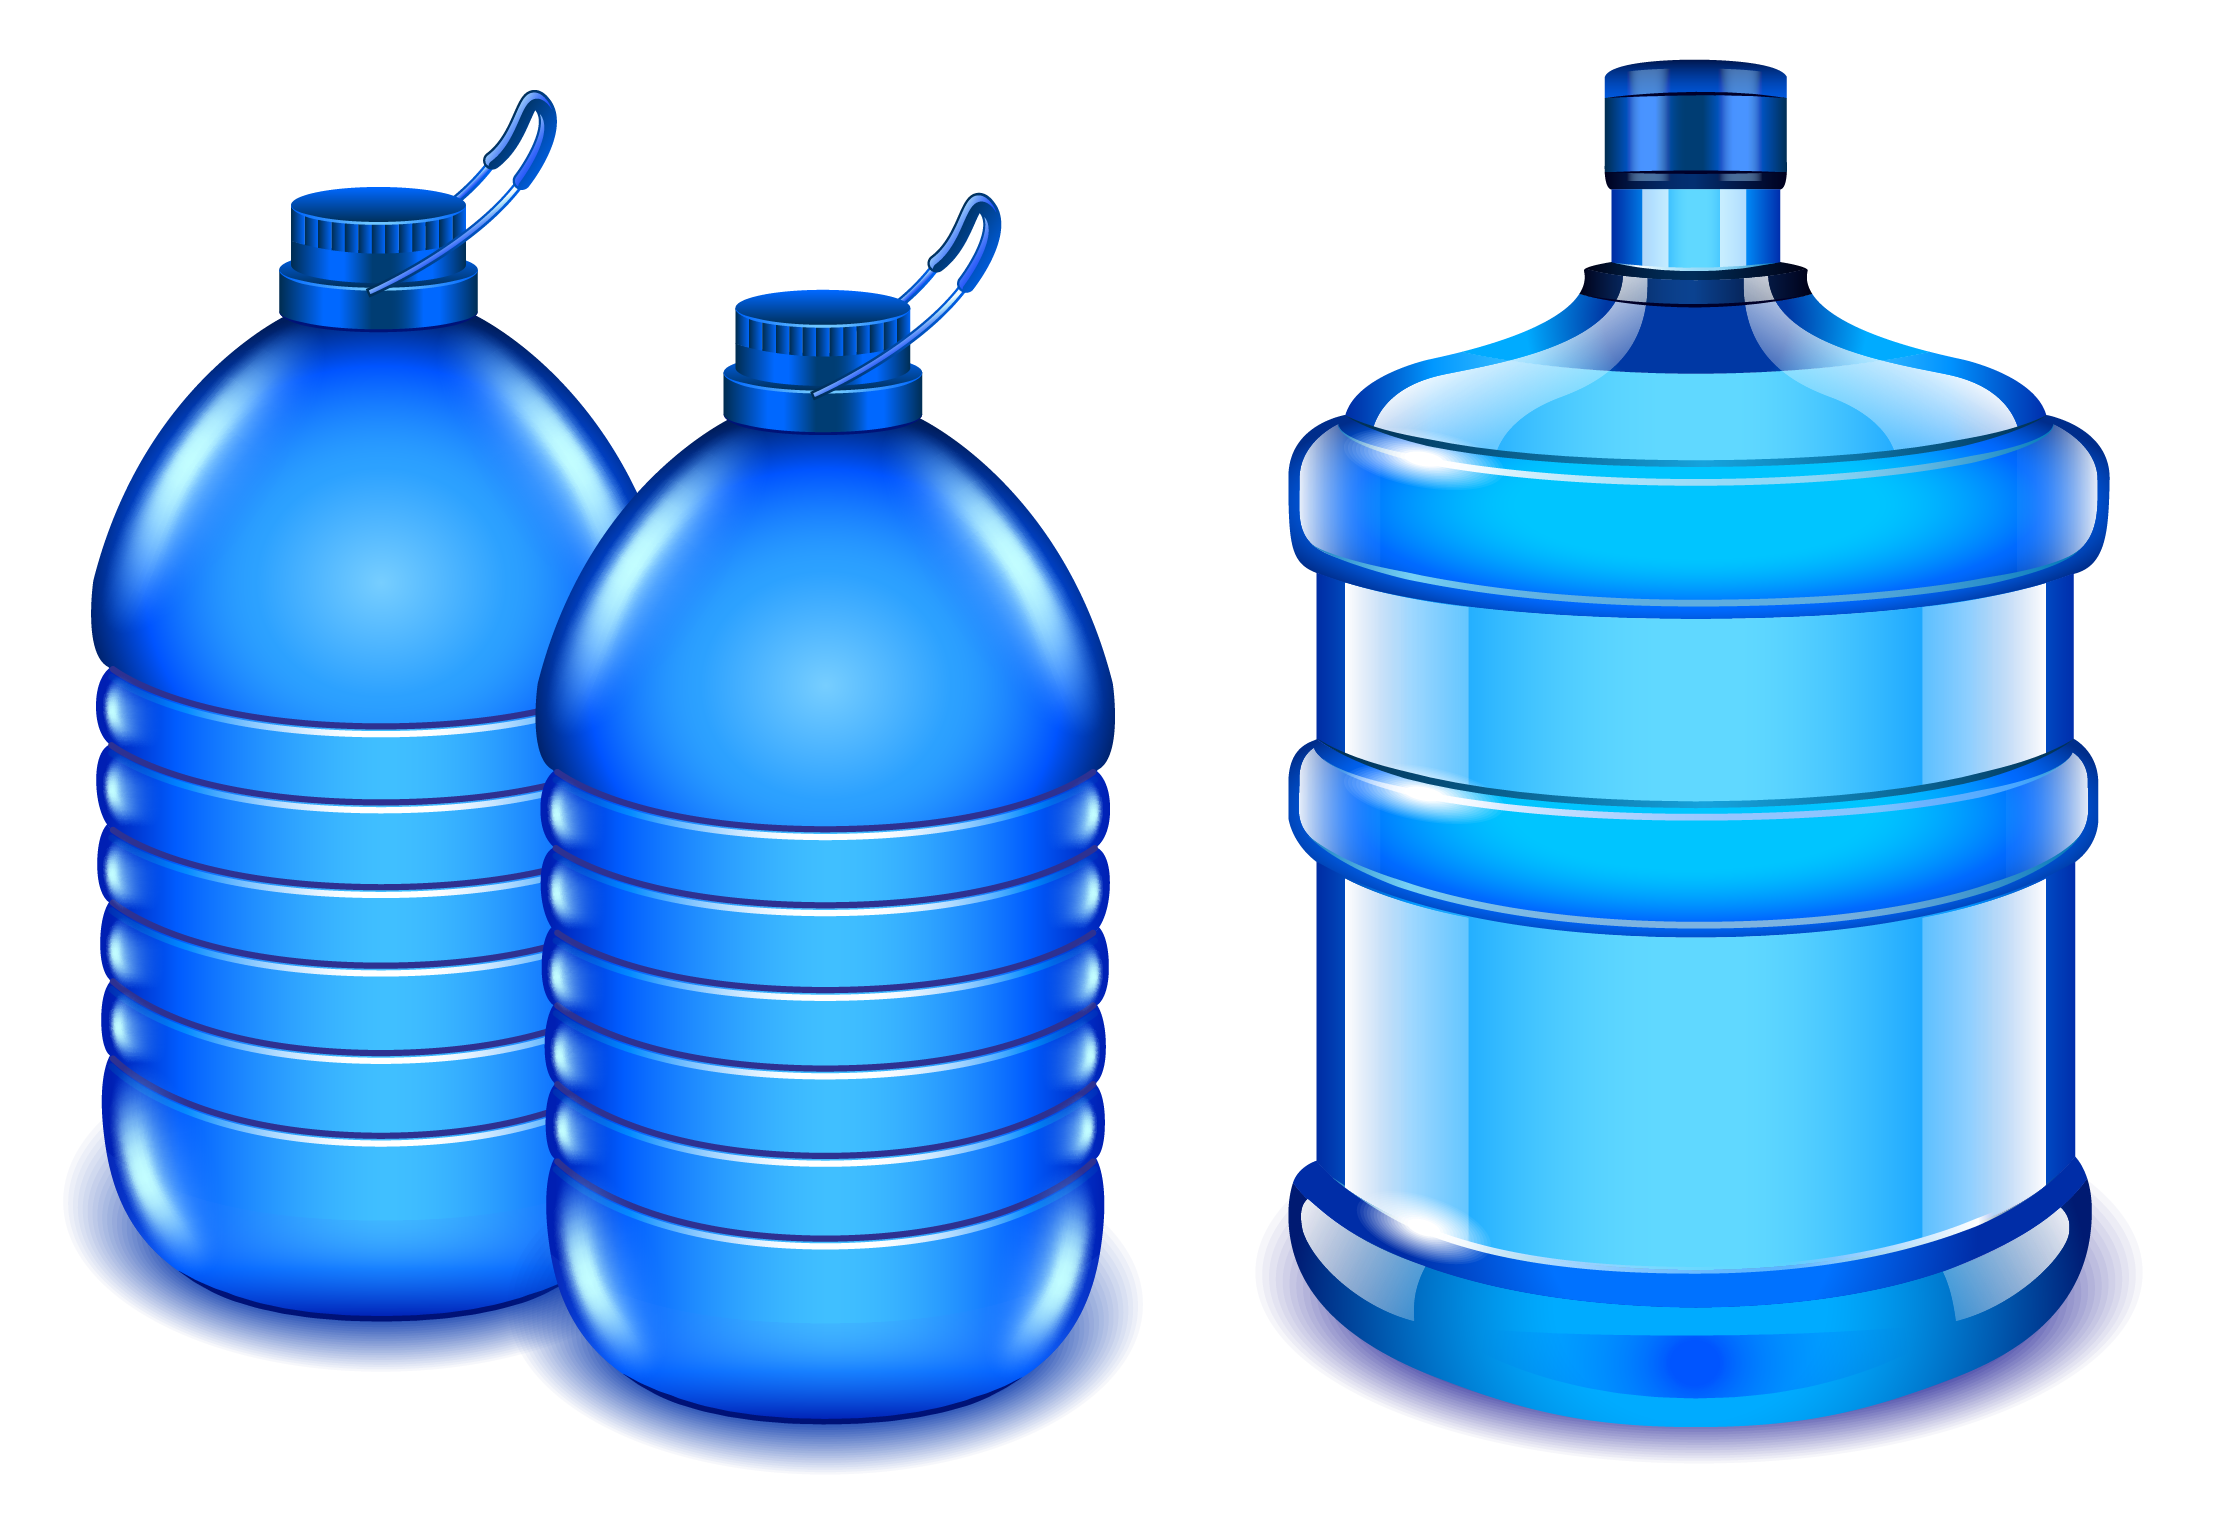 14 cliparts for free. Download Lunchbox clipart water bottle and use.